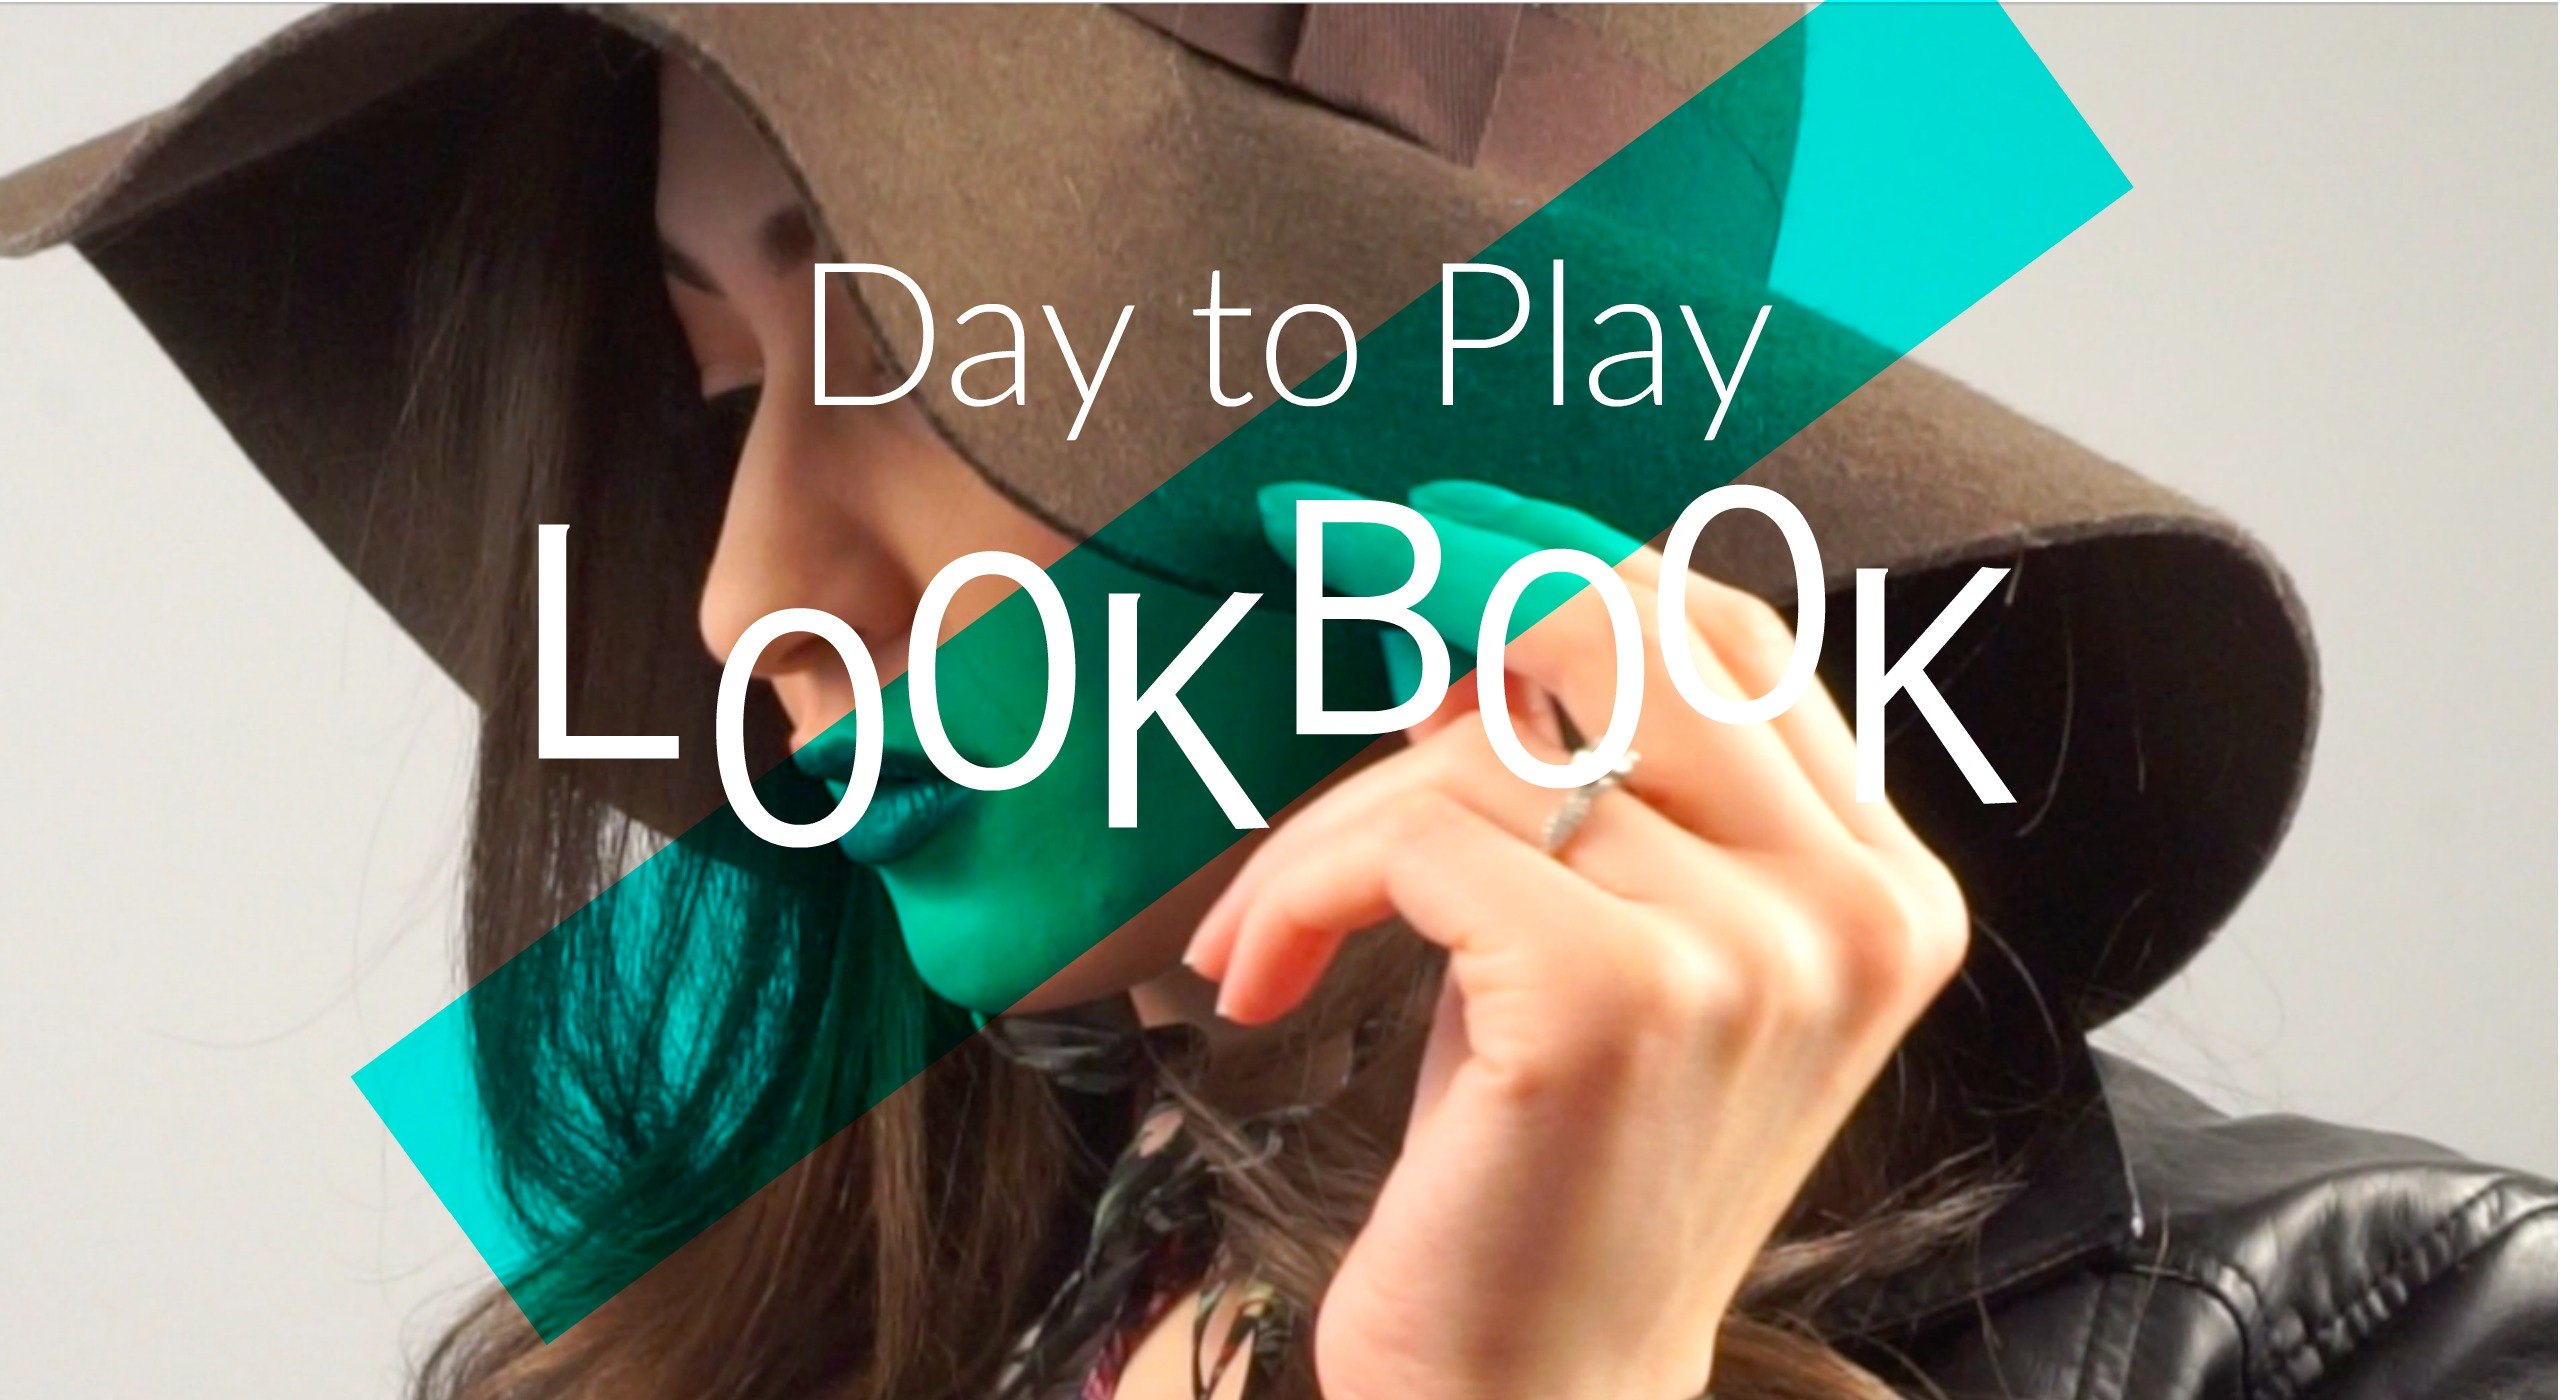 Day to Play Affordable Lookbook